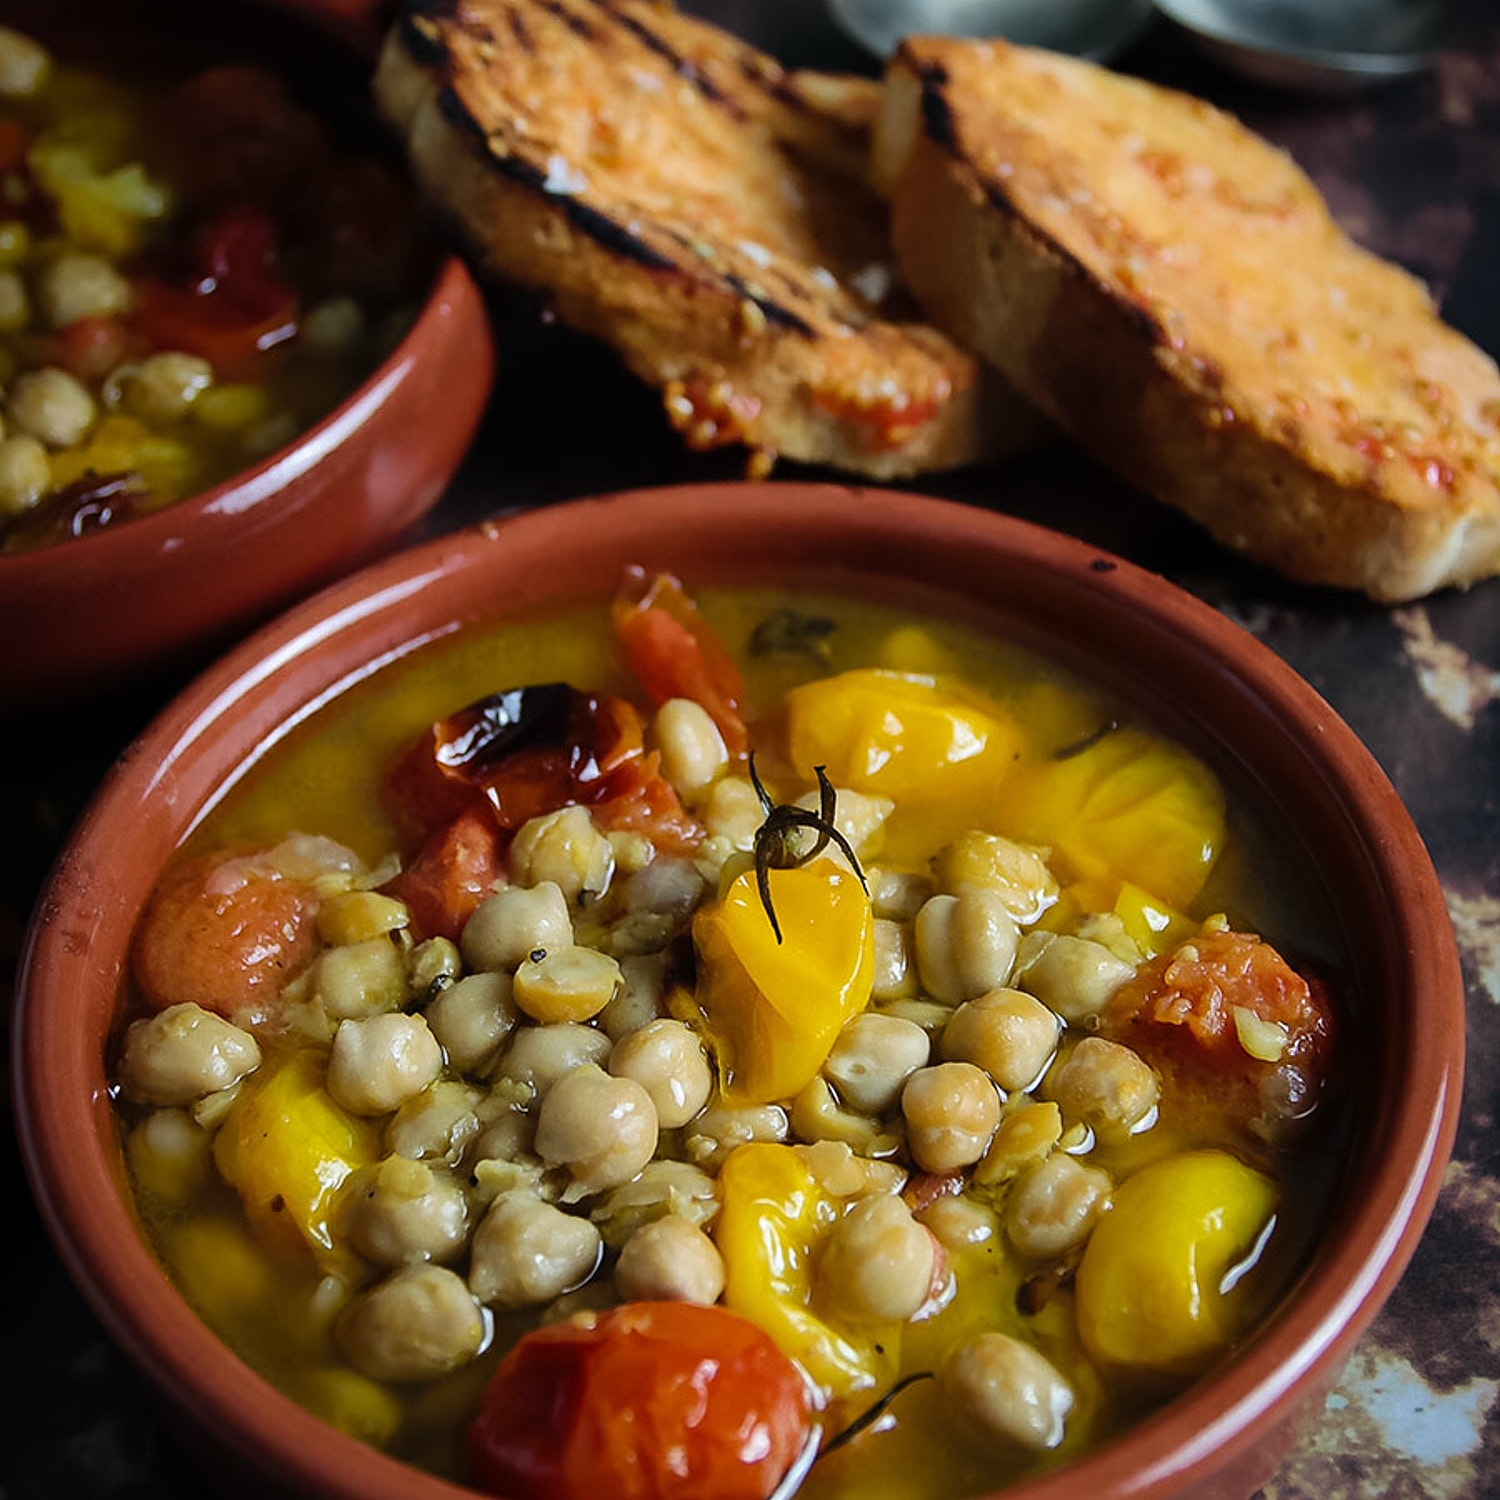 Chickpeas in Broth, Lots of olive oil & black pepper, Pan con Tomate